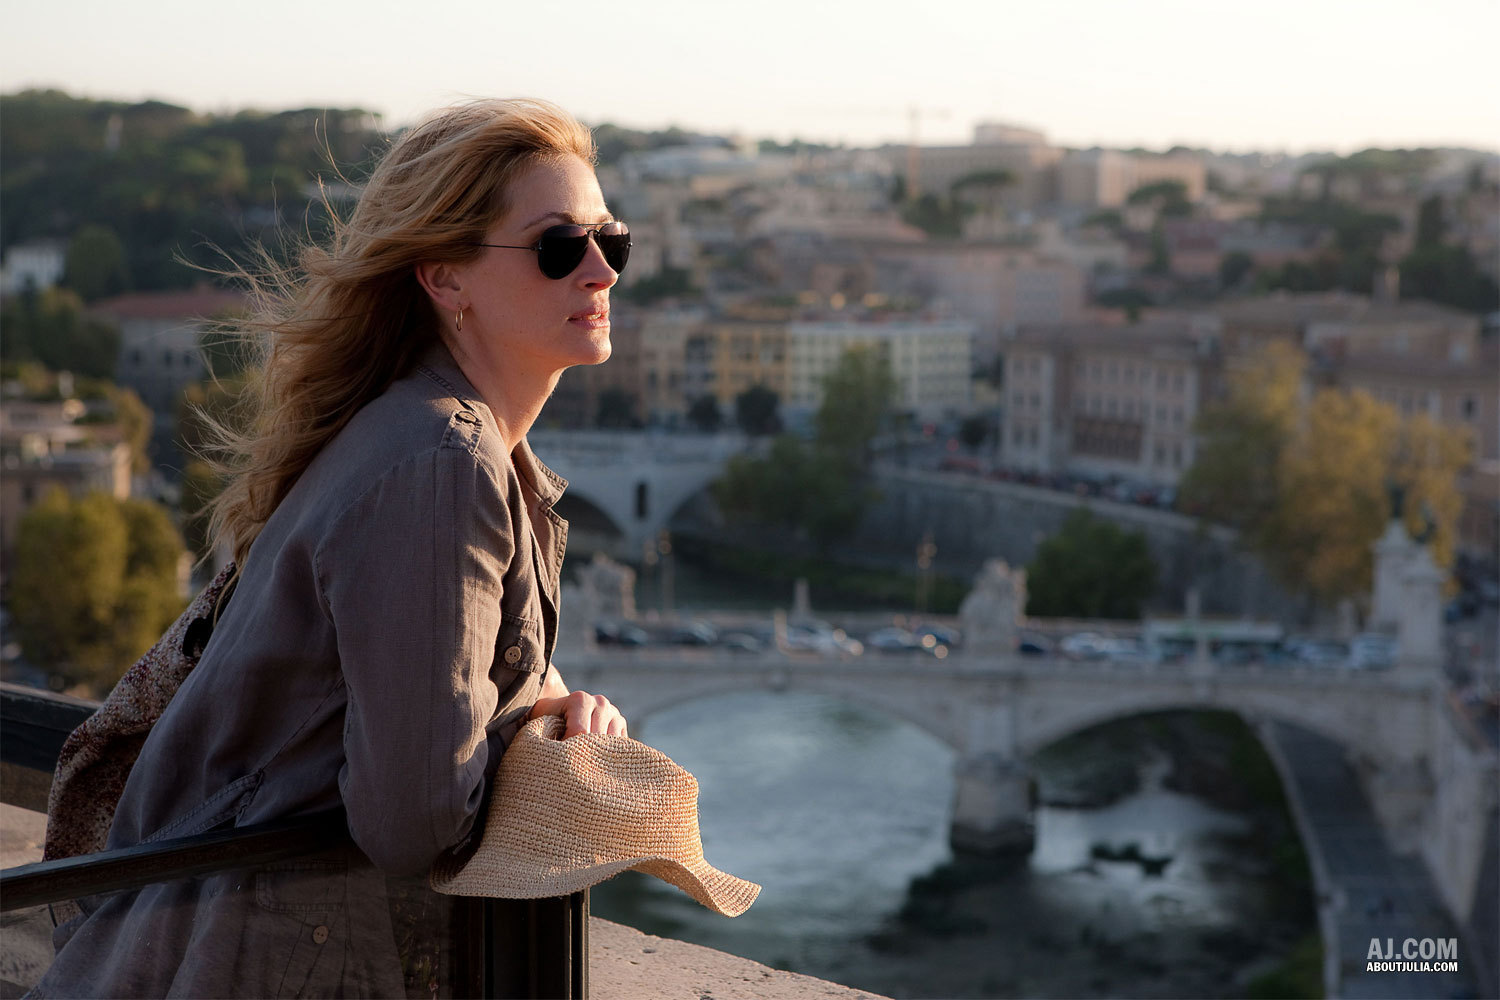 Eat-Pray-Love-Movie-Stills-julia-roberts-9634601-1500-1000